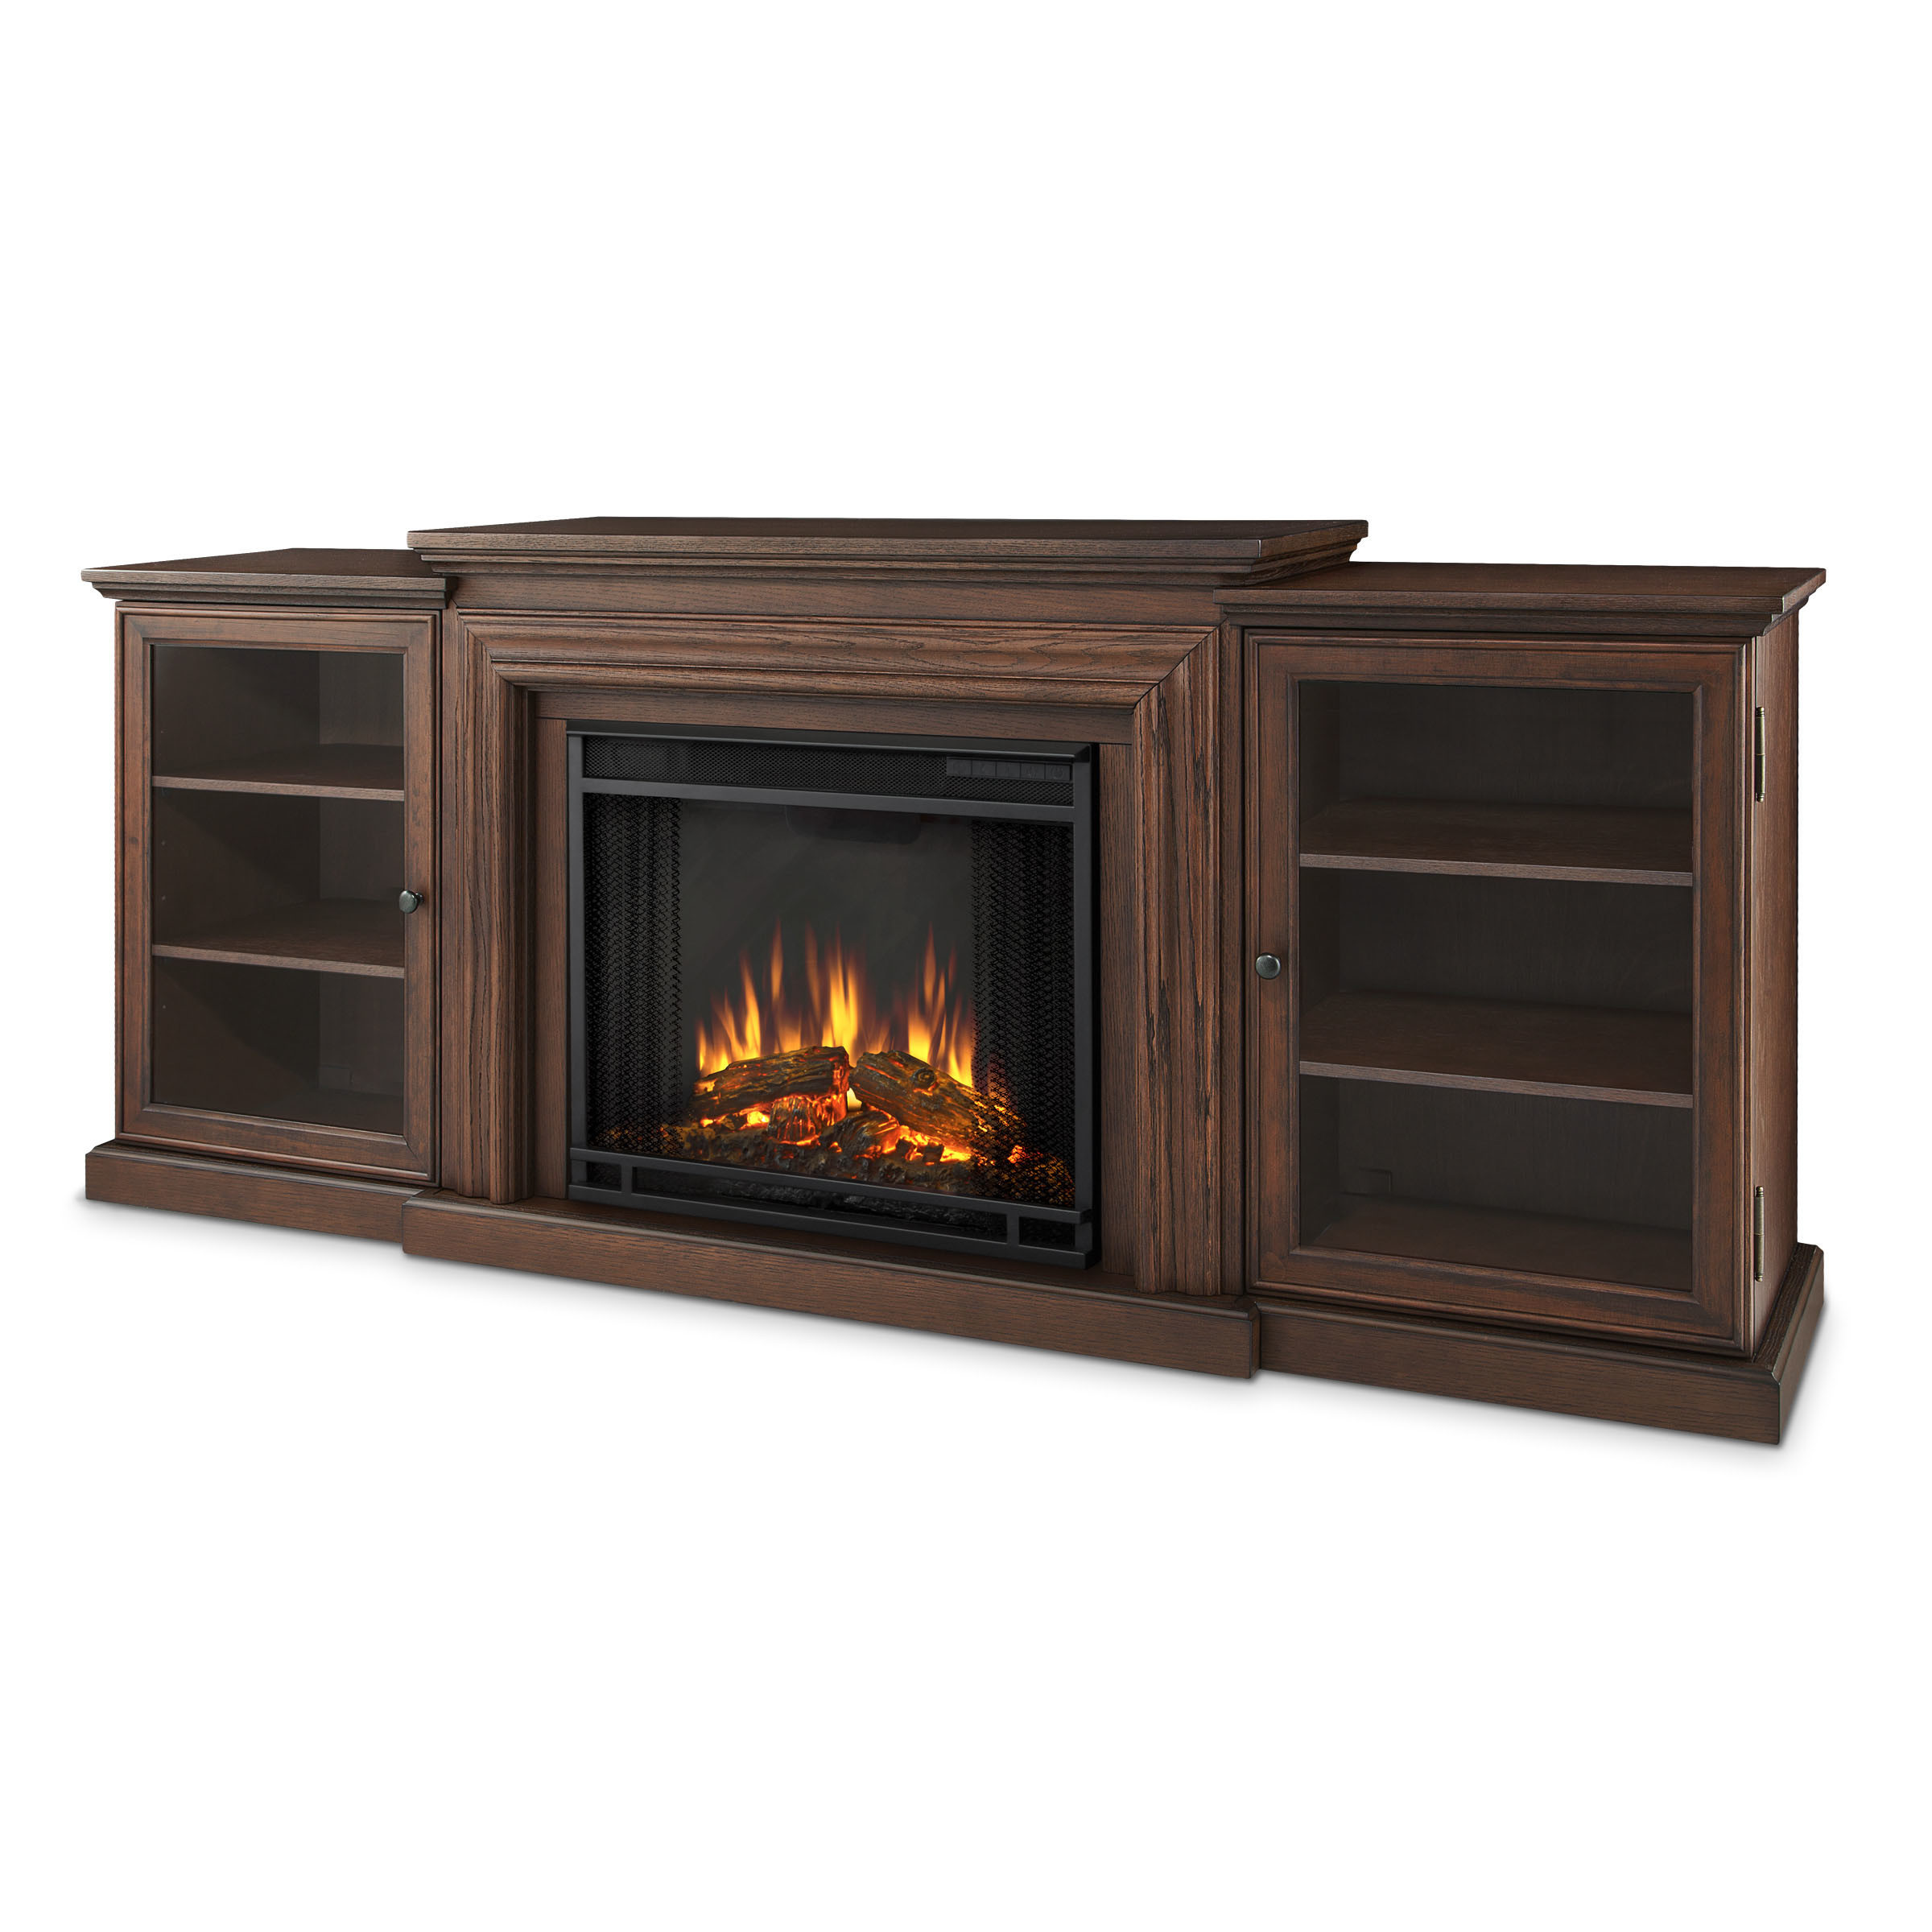 Best ideas about Real Flame Electric Fireplace . Save or Pin Real Flame Frederick TV Stand with Electric Fireplace Now.